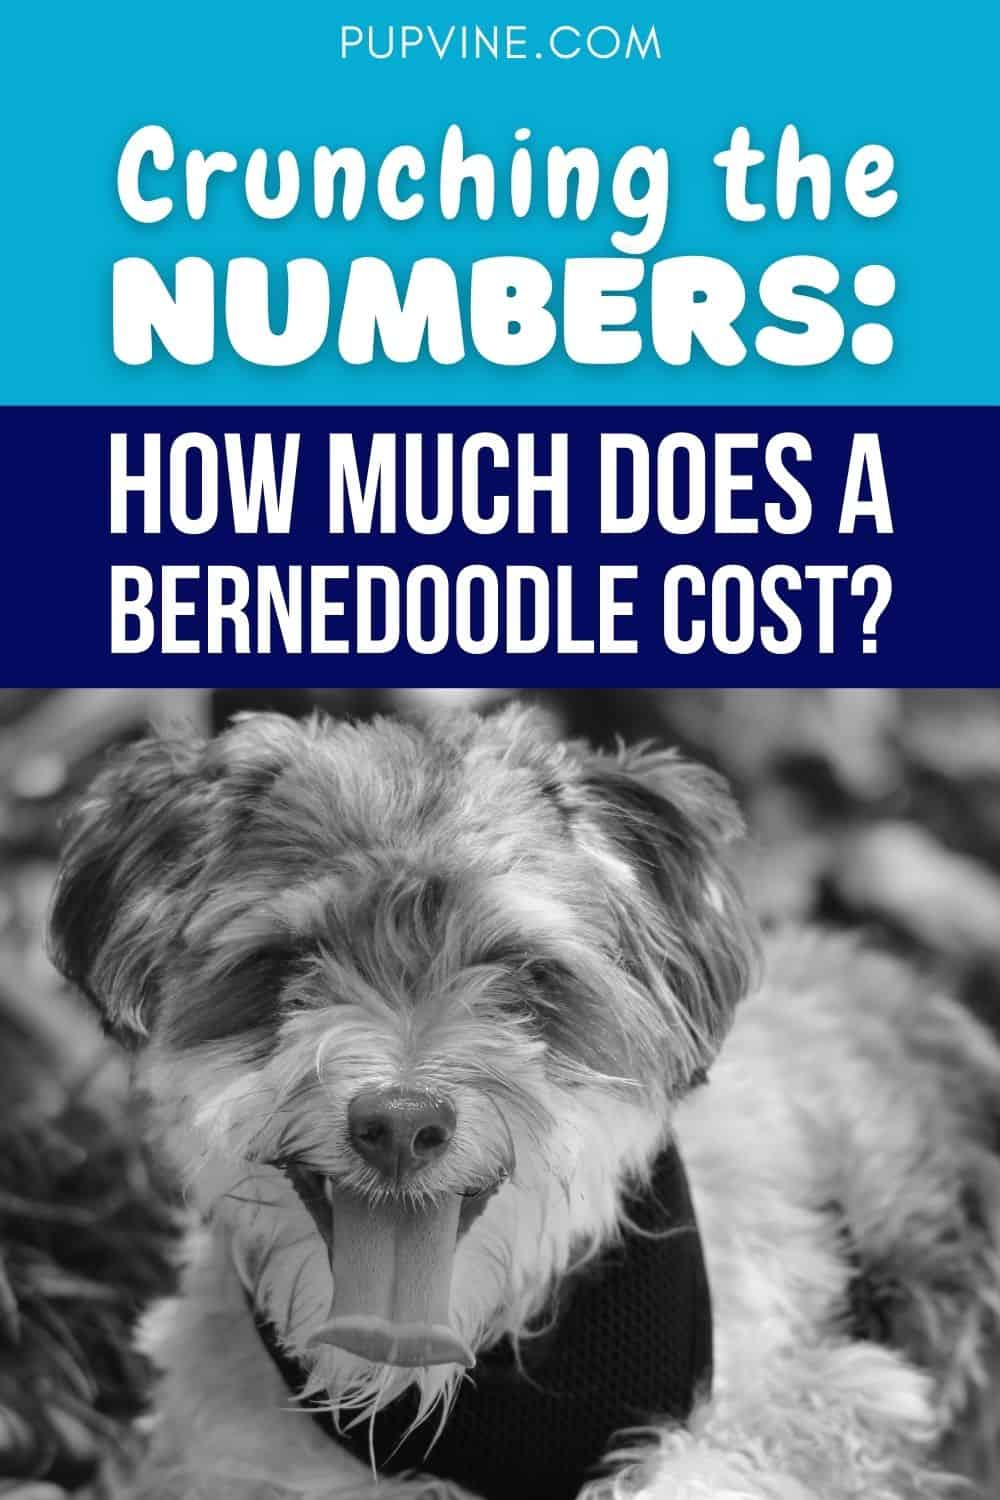 Crunching The Numbers How Much Does A Bernedoodle Cost